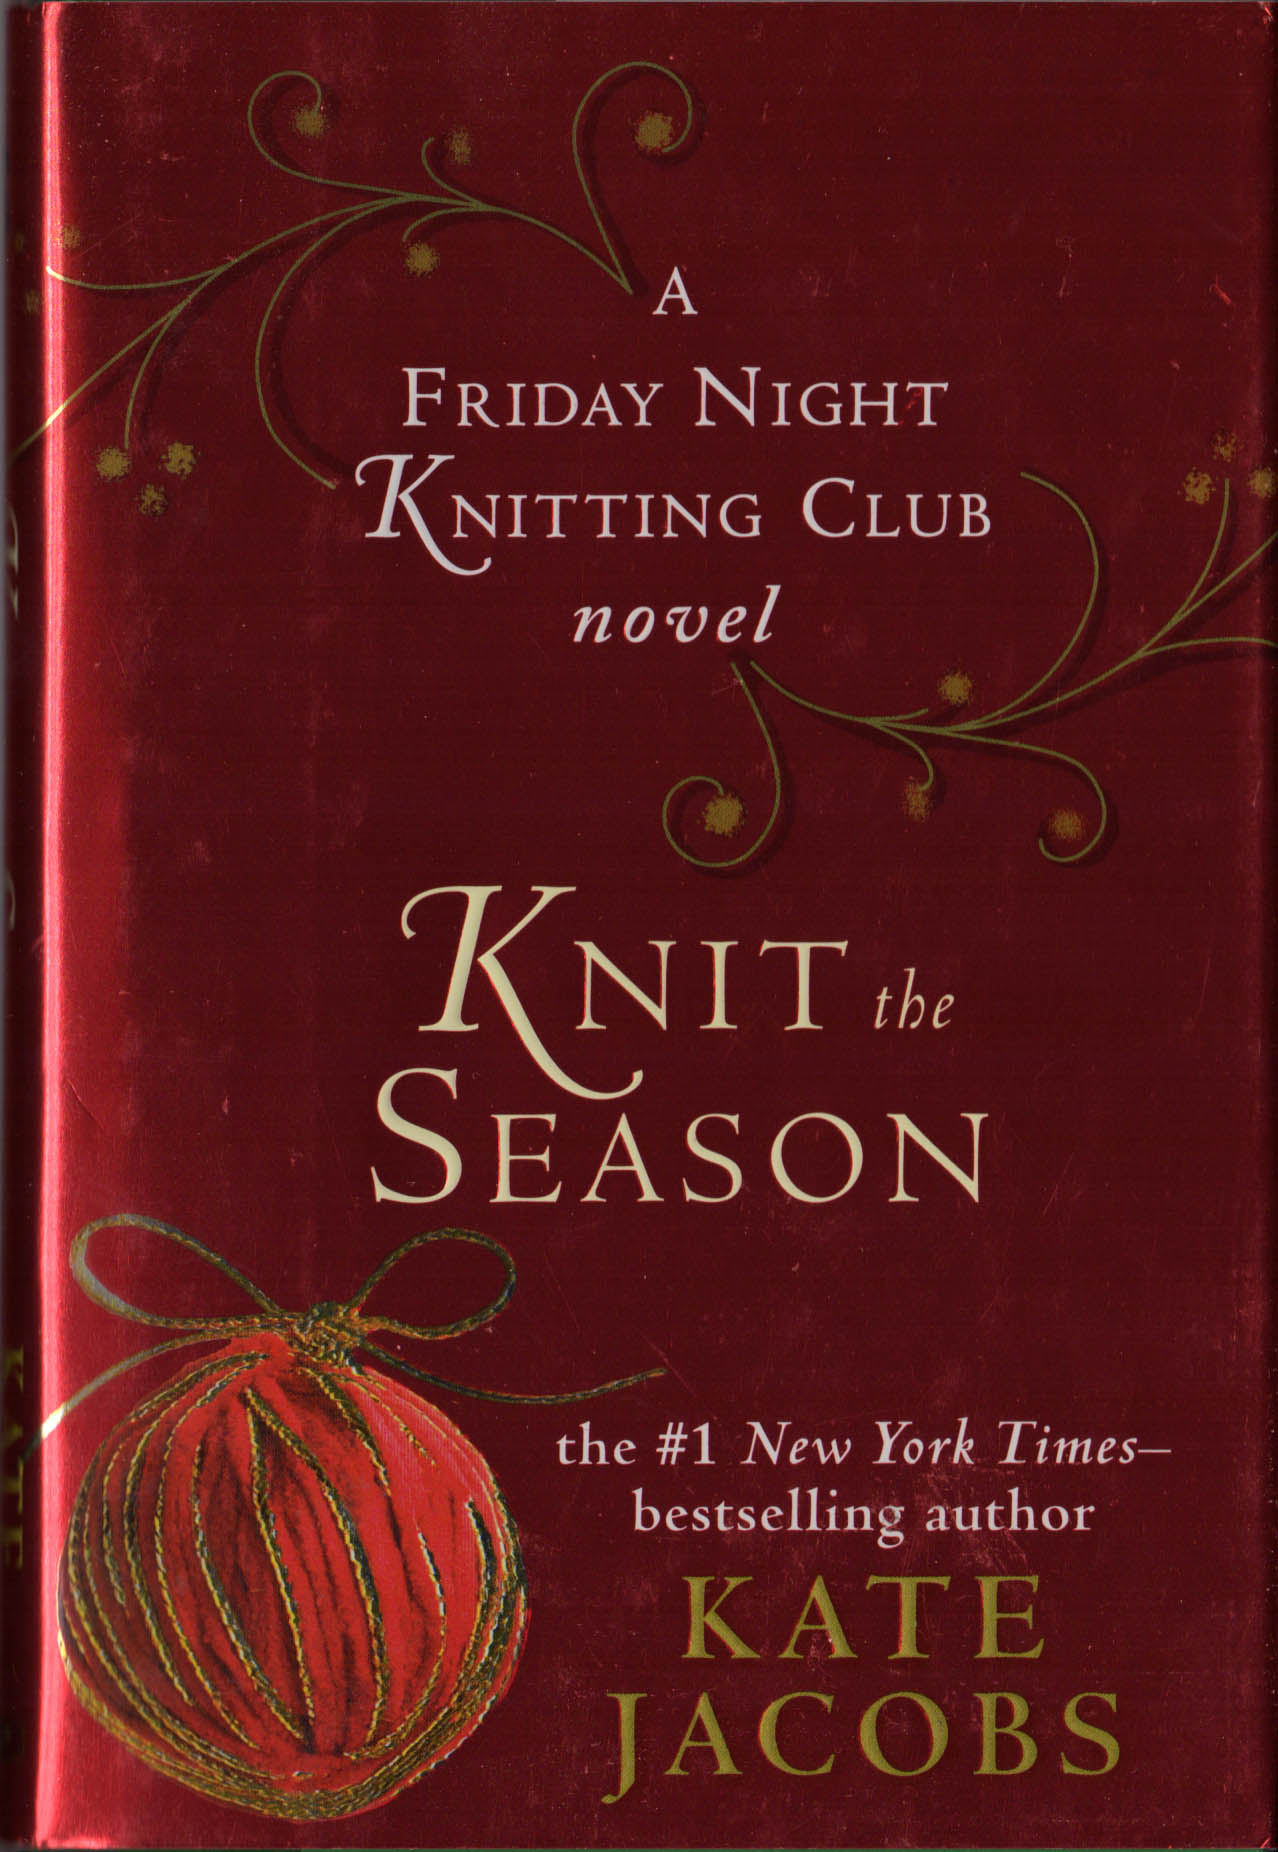 Friday Night Knitting Club Knit The Season Kate Jacobs